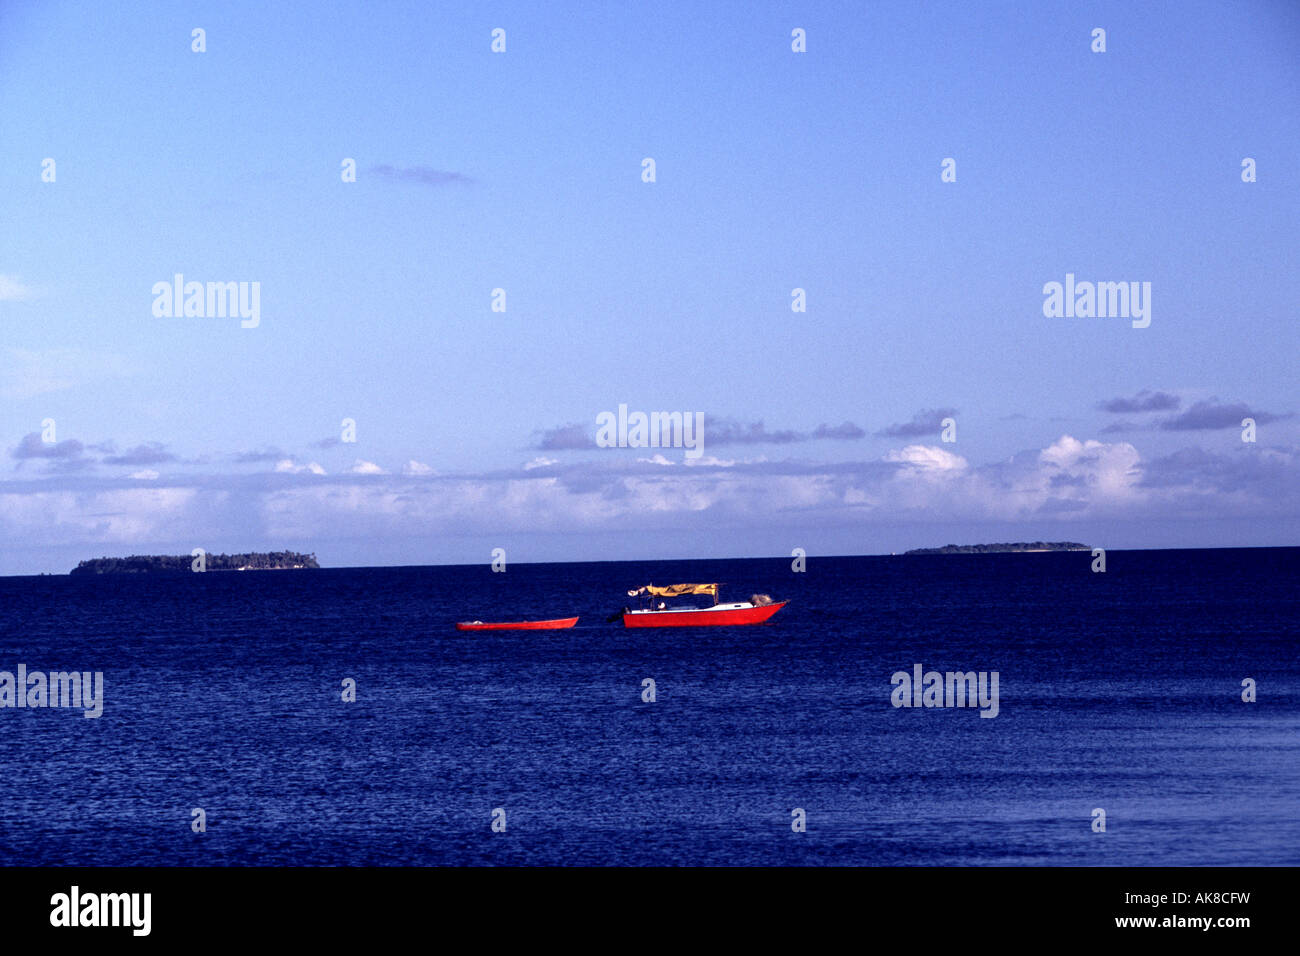 A red taxi boat crosses the sea between the Islands of Kiribati, South Pacific. - Stock Image